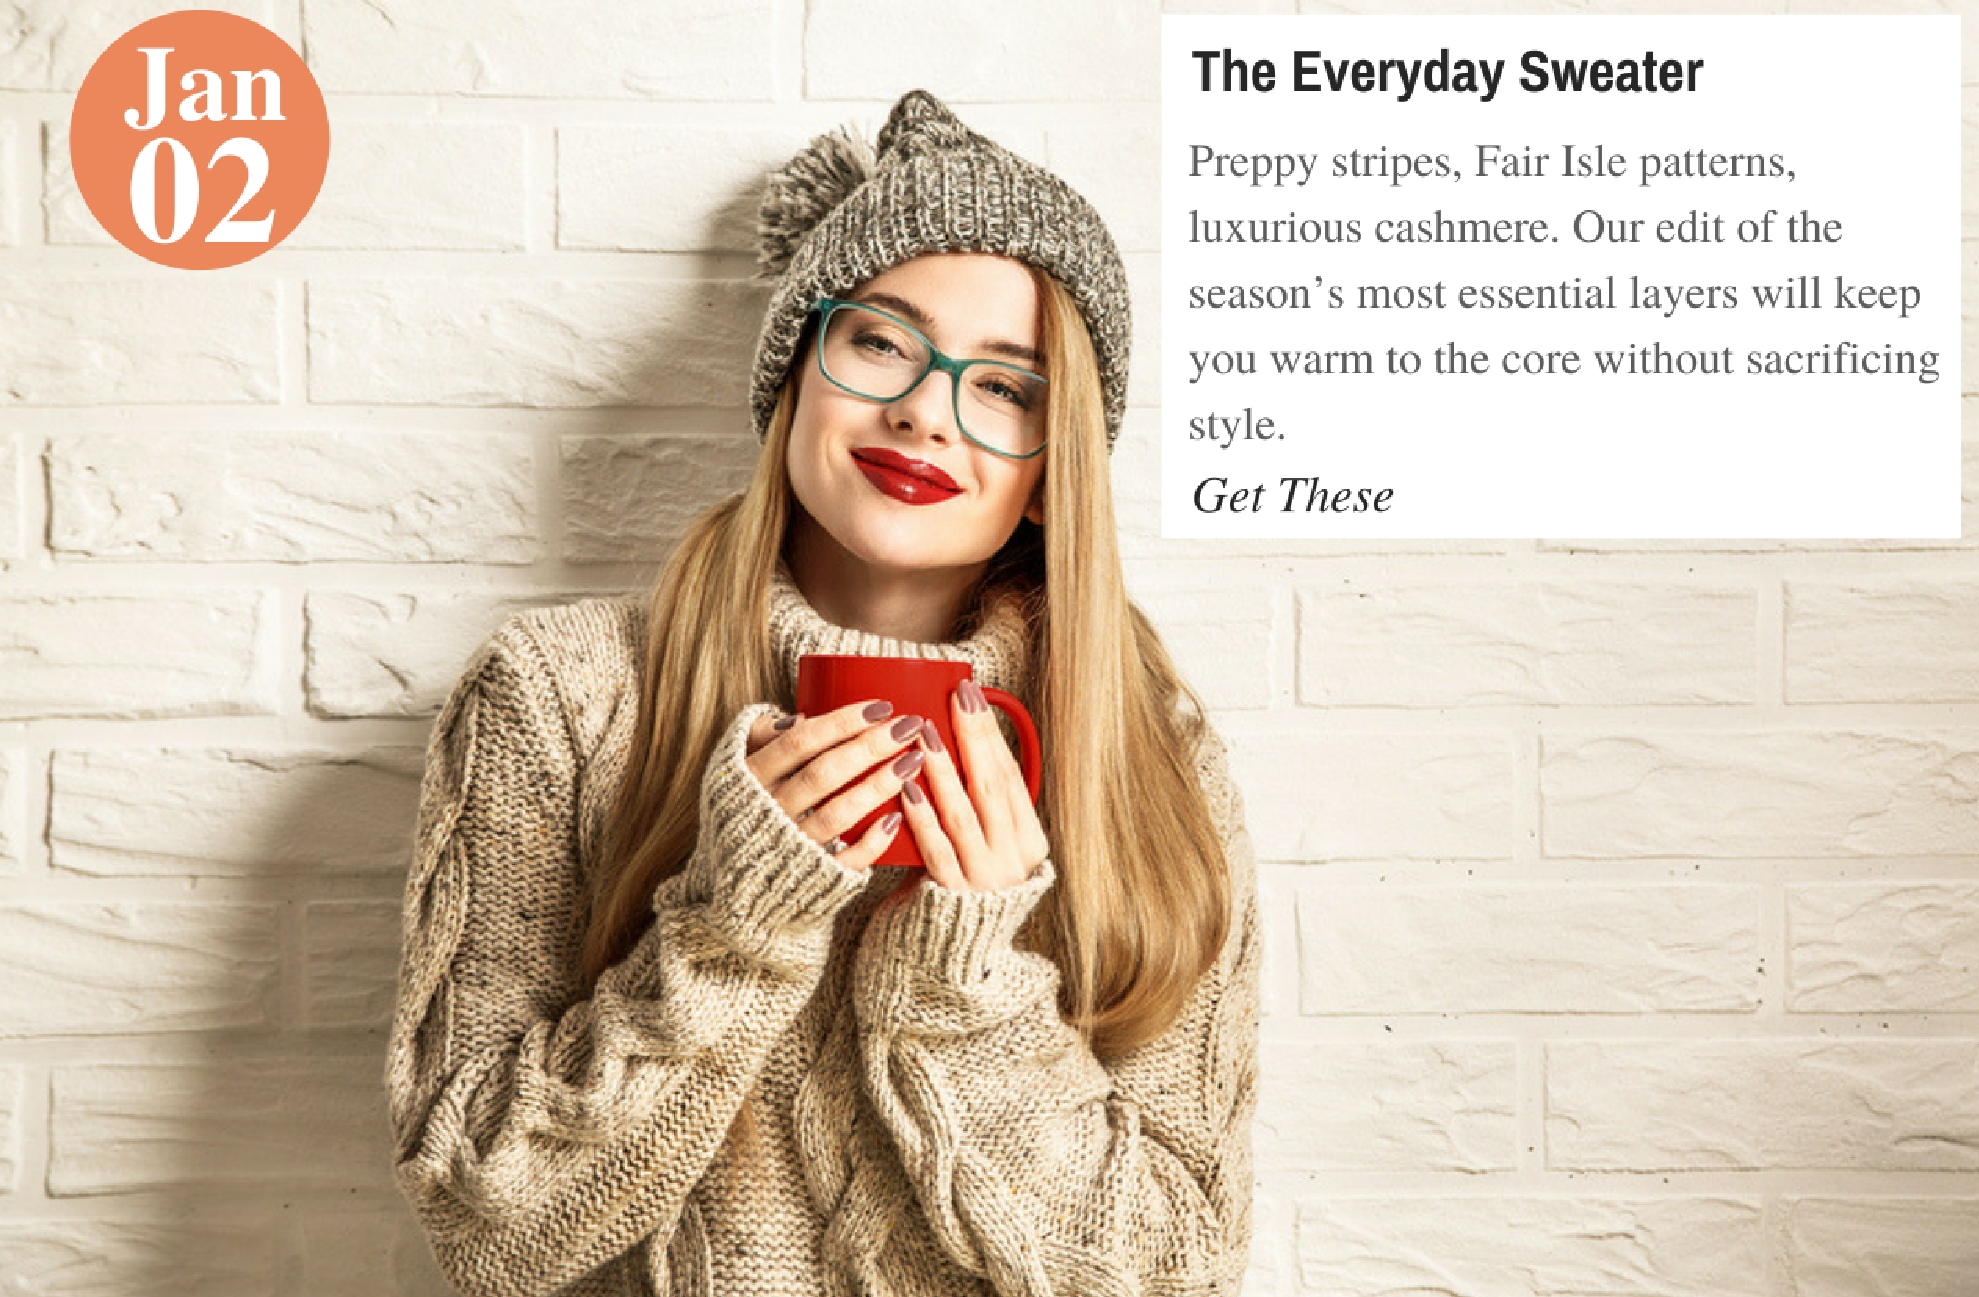 The Everyday Sweater